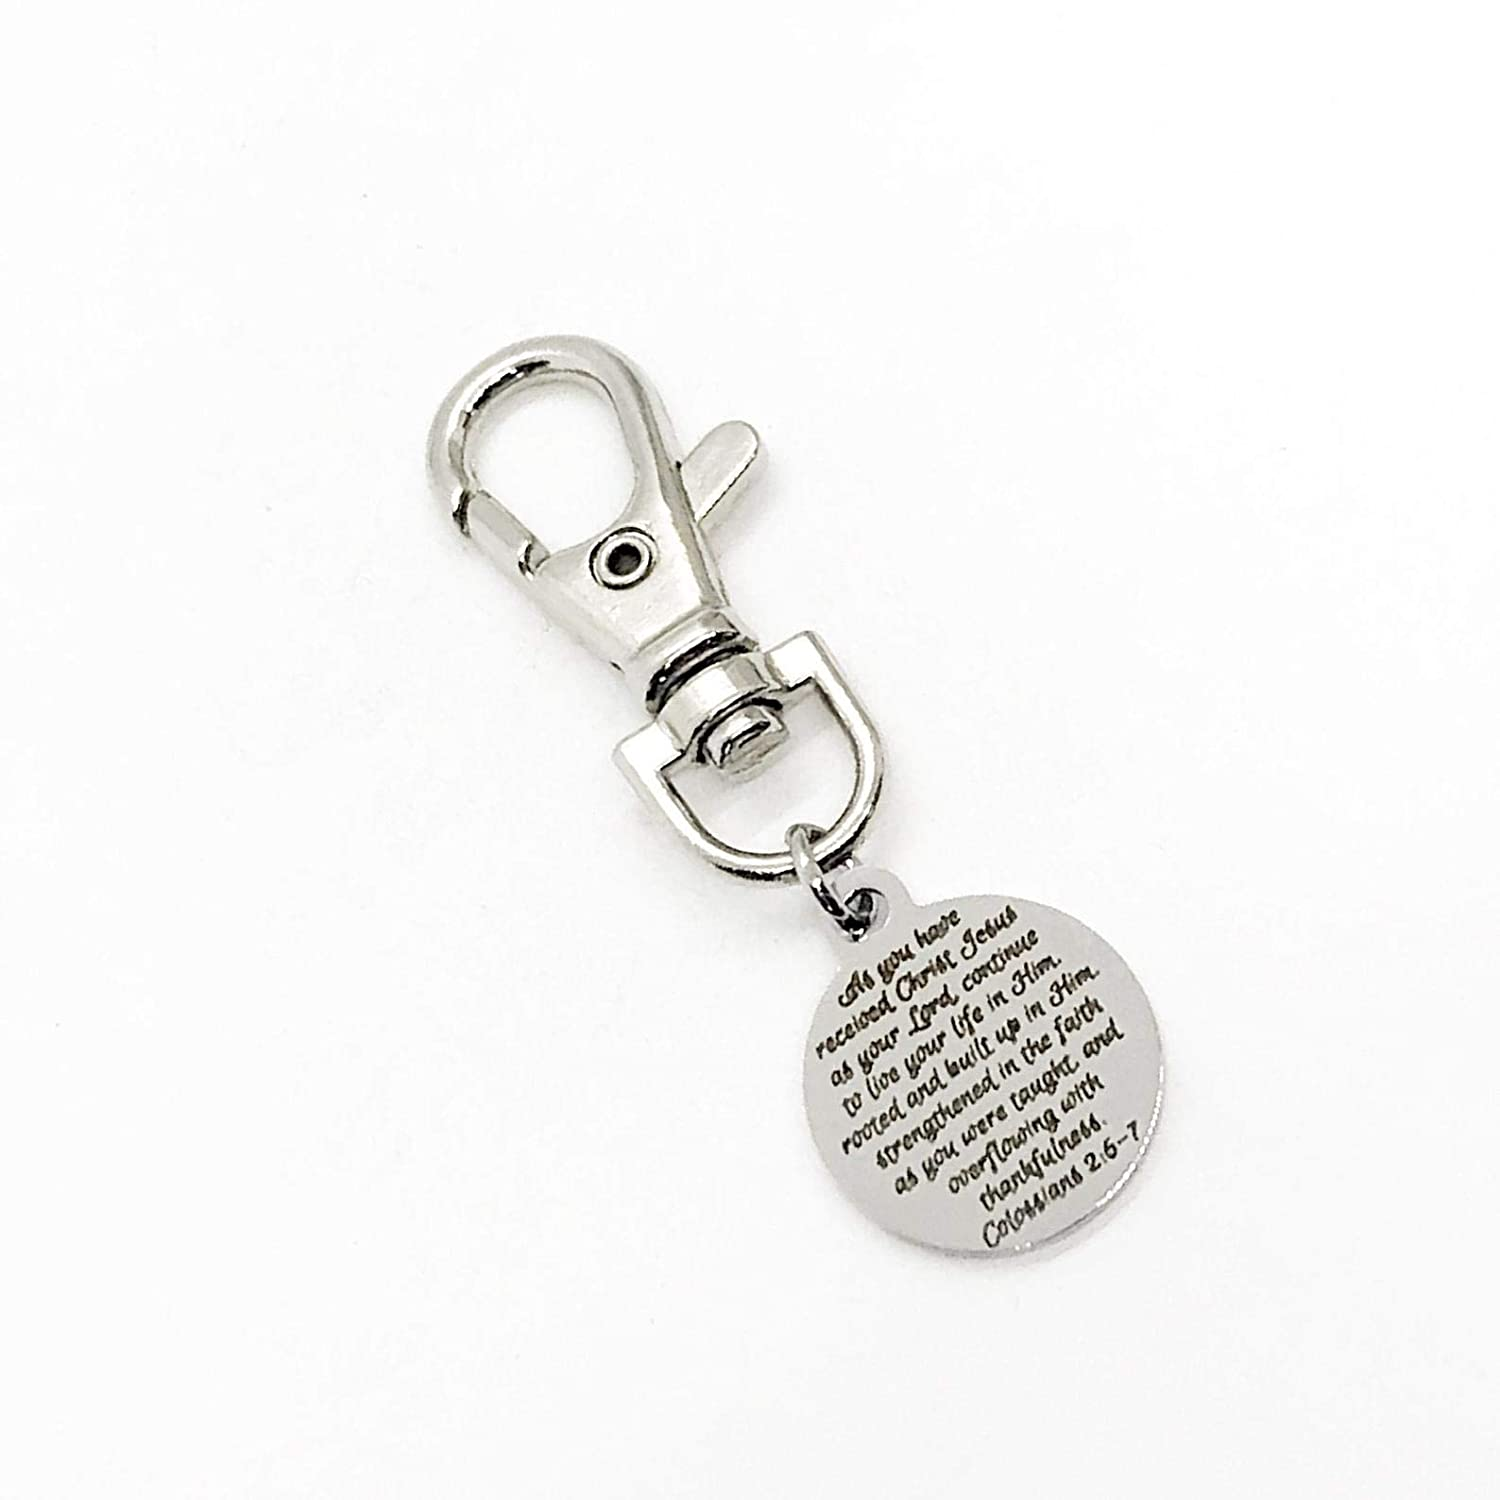 BAPTISM keyring BOXED ENGRAVED FREE Metal Key ring perfect GIFT